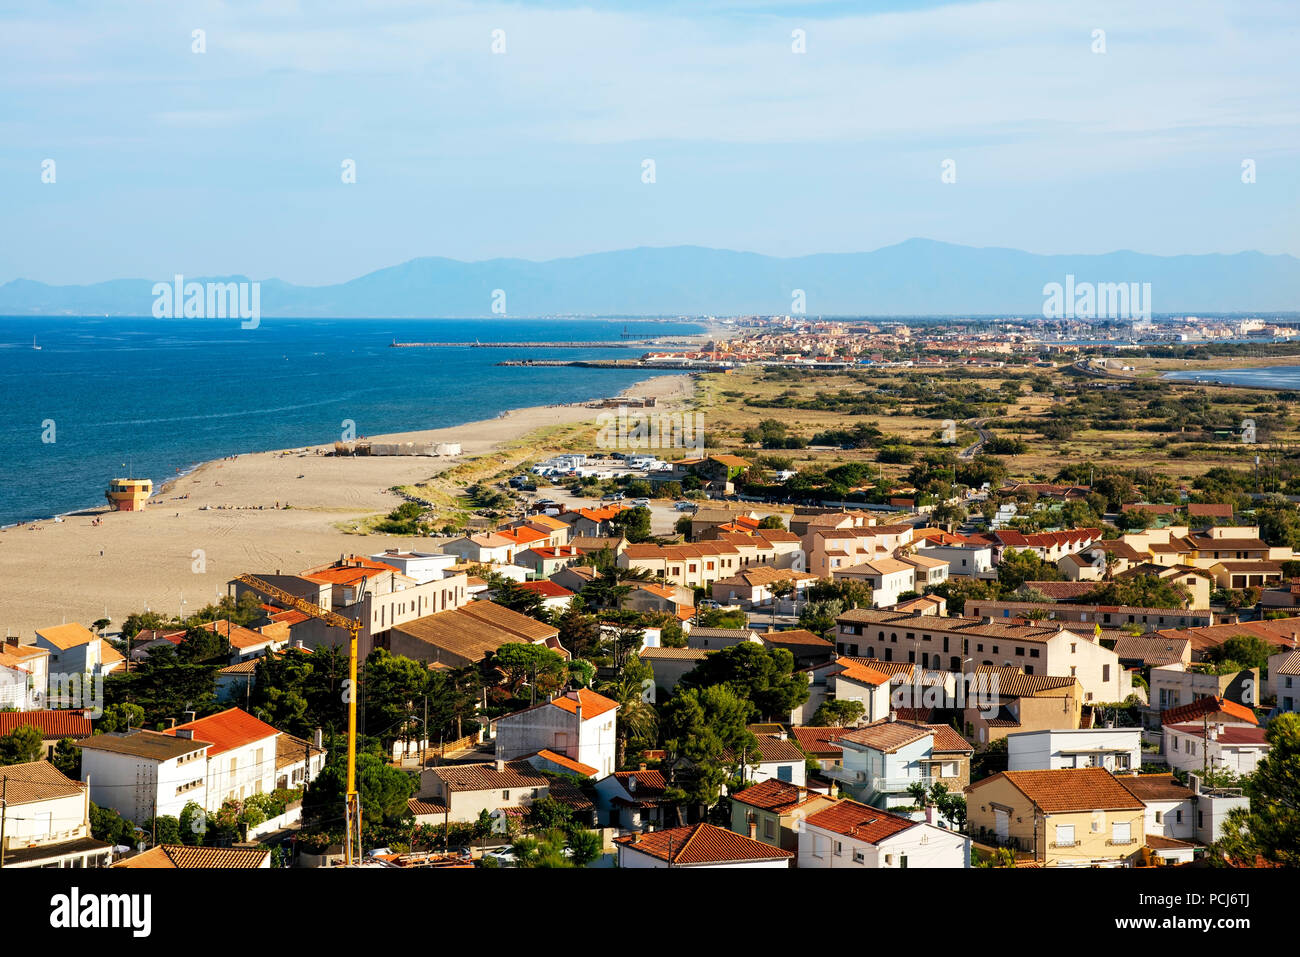 an aerial view of the Falaise district of Leucate, France, with the Leucate Plage beach and the Mediterranean sea on the left and the lagoon on the ri Stock Photo